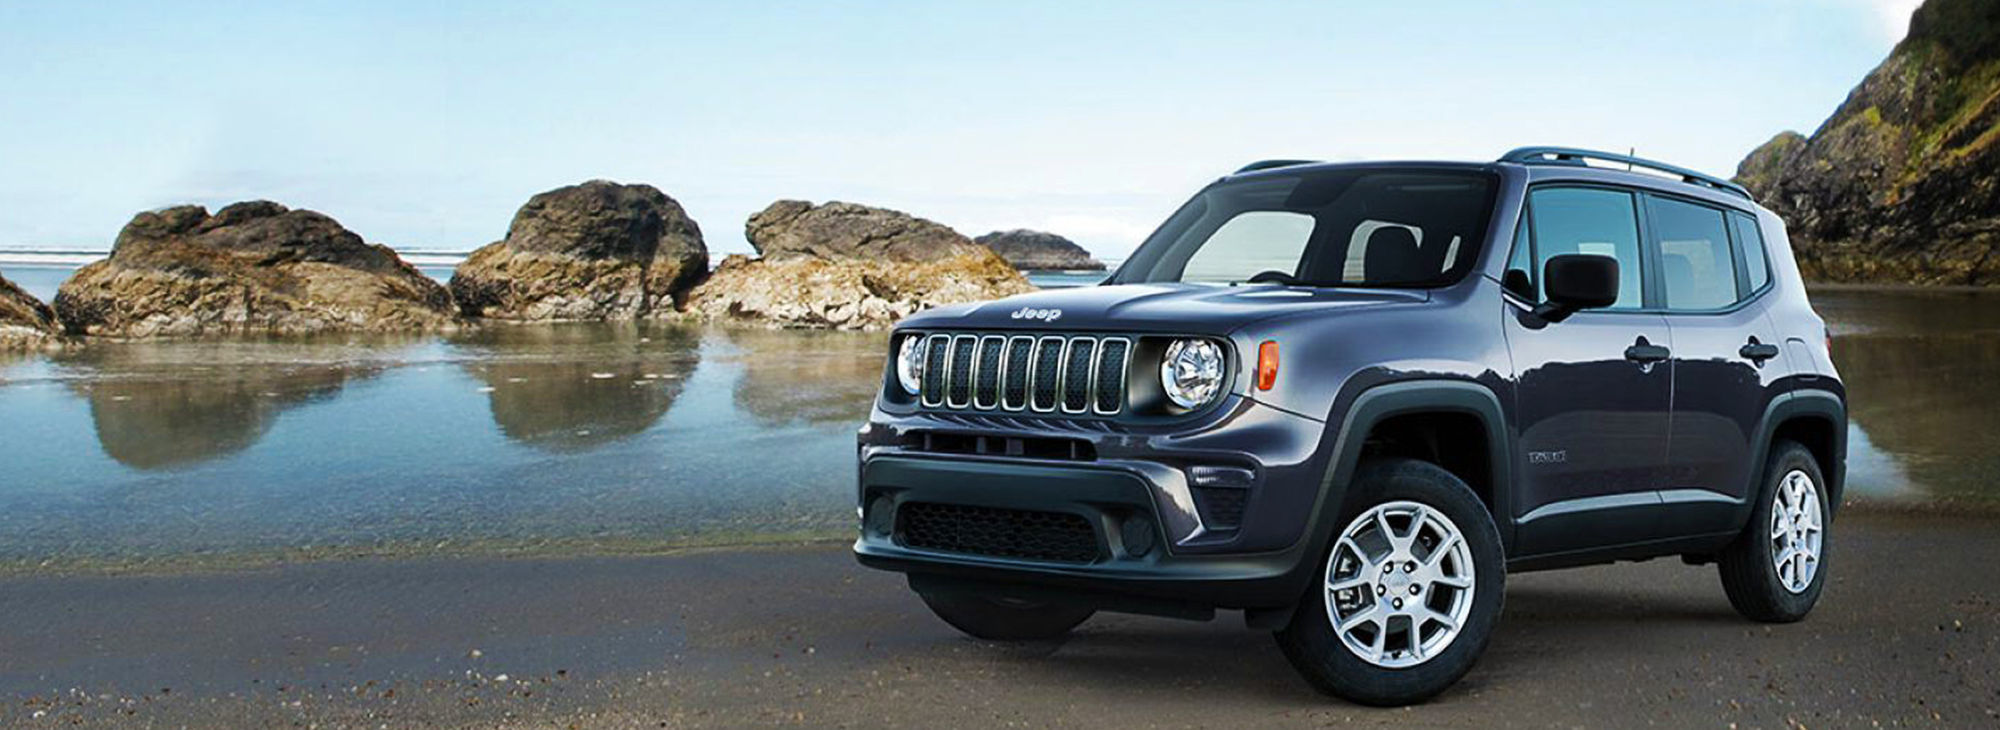 Jeep Renegade banner ua